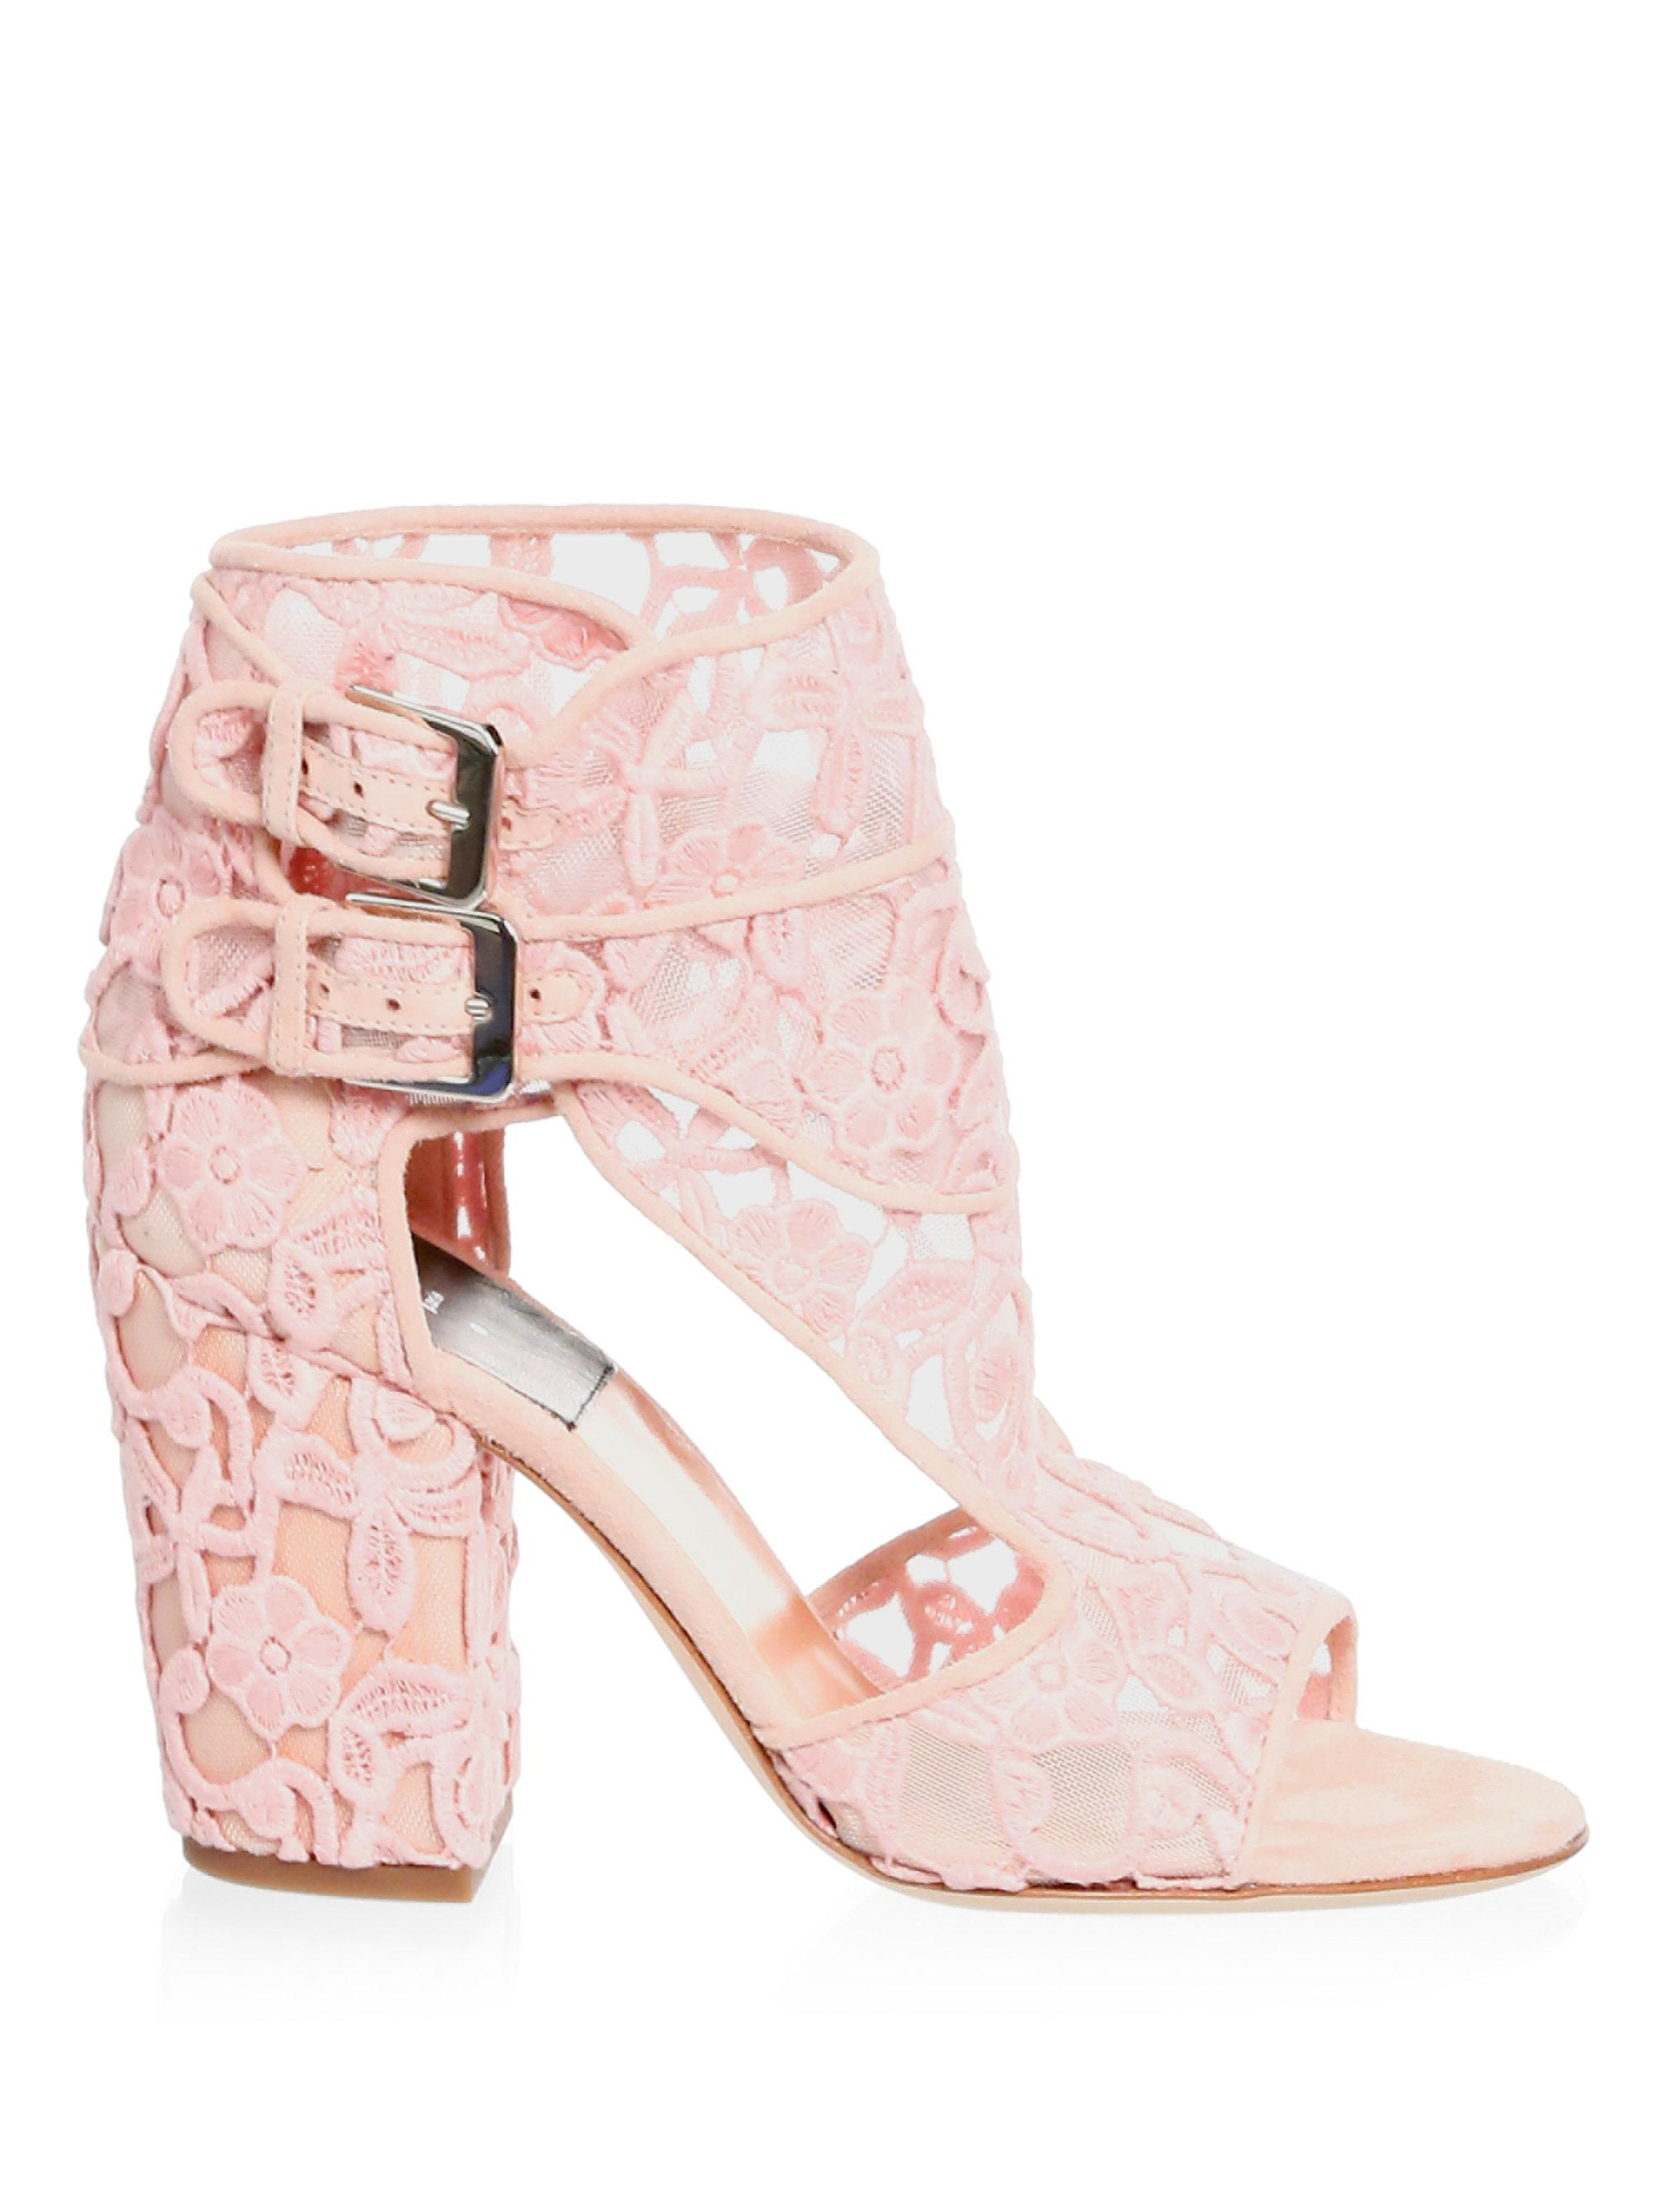 LAURENCE DACADE Lace buckle sandals Outlet Free Shipping Cheap Sale Fast Delivery 4NuFB